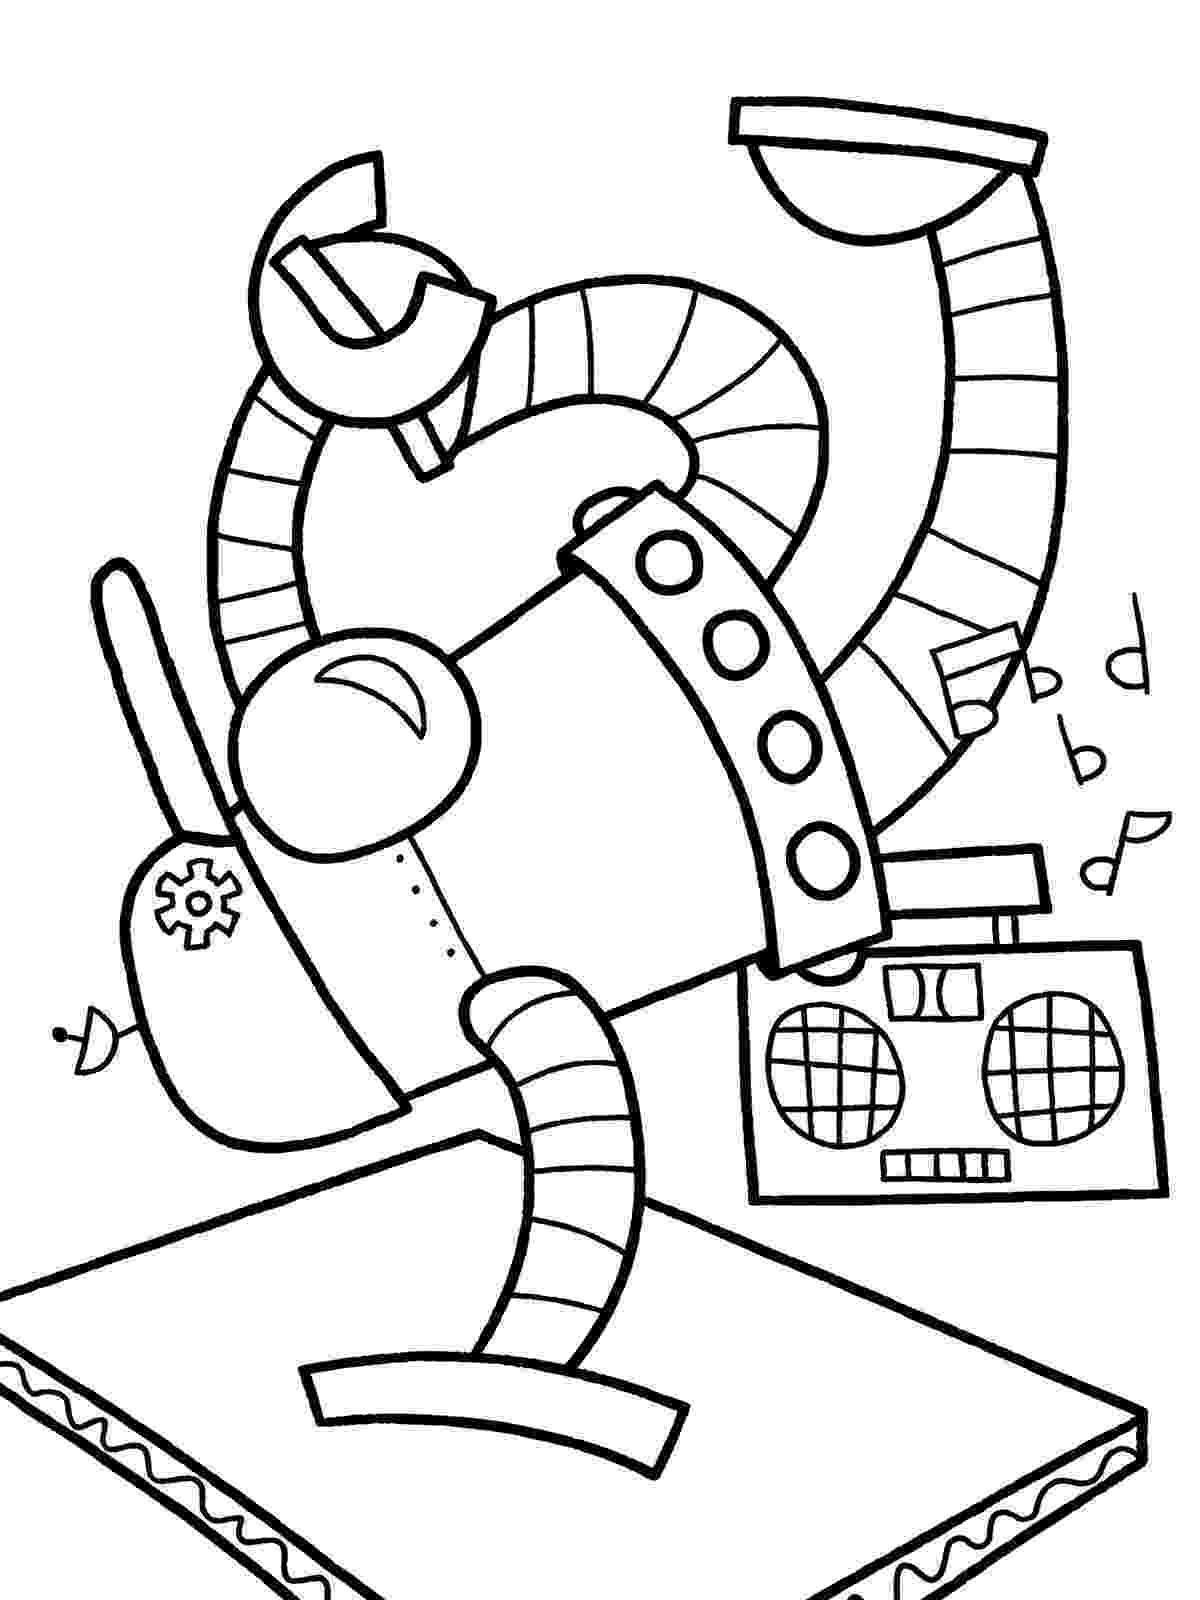 robots coloring pages witty title coming soon october 2011 robots coloring pages